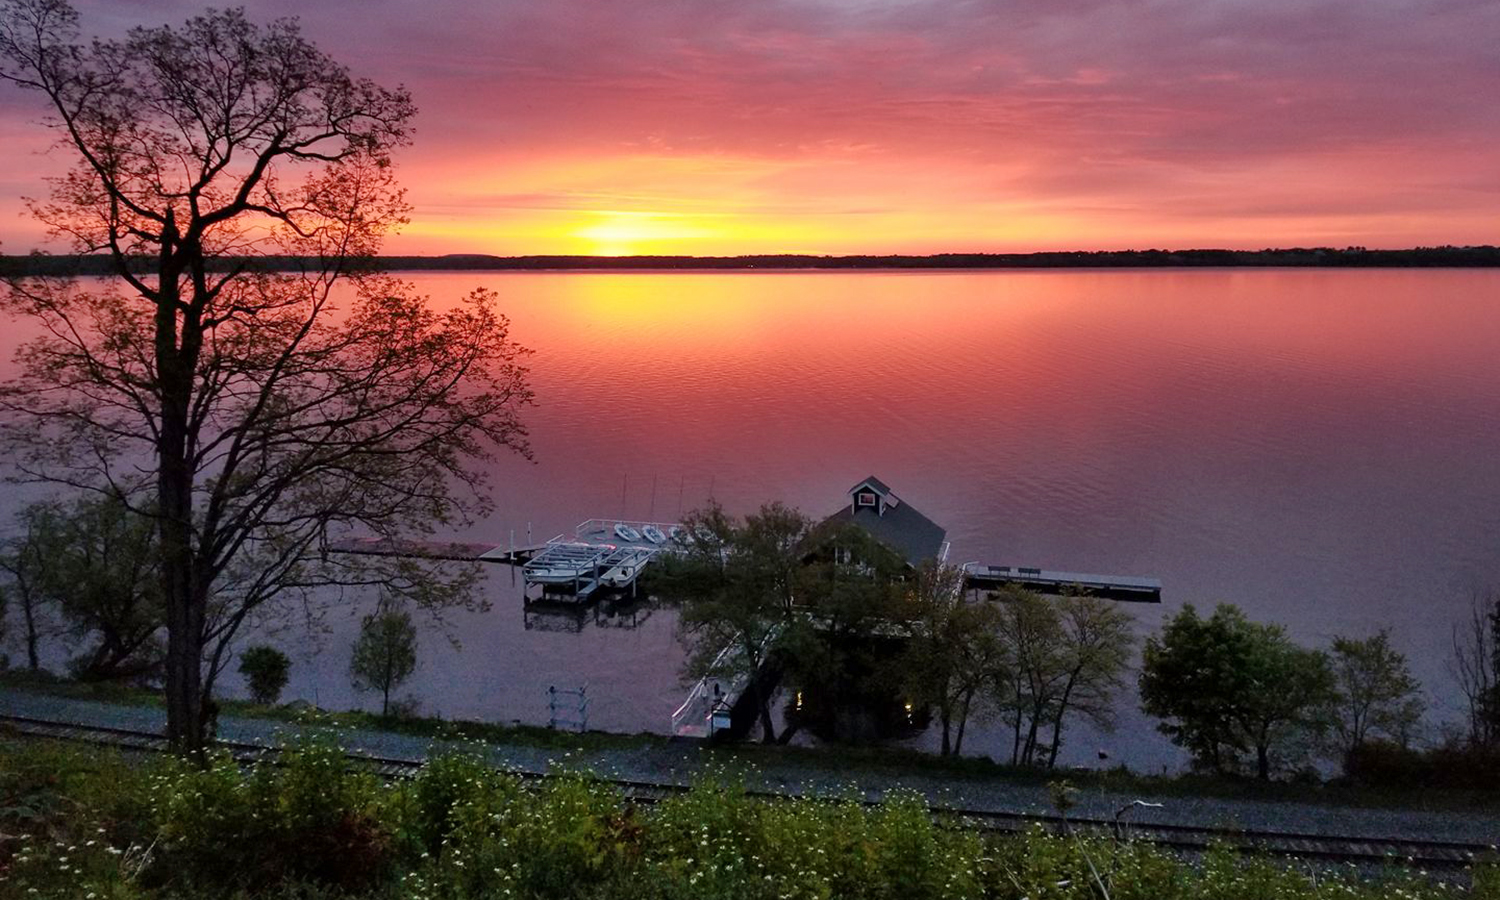 HWS Trustee Emerita Maureen Collins Zupan '72, L.H.D.'16, P'09 captures a stunning sunrise over Seneca Lake.